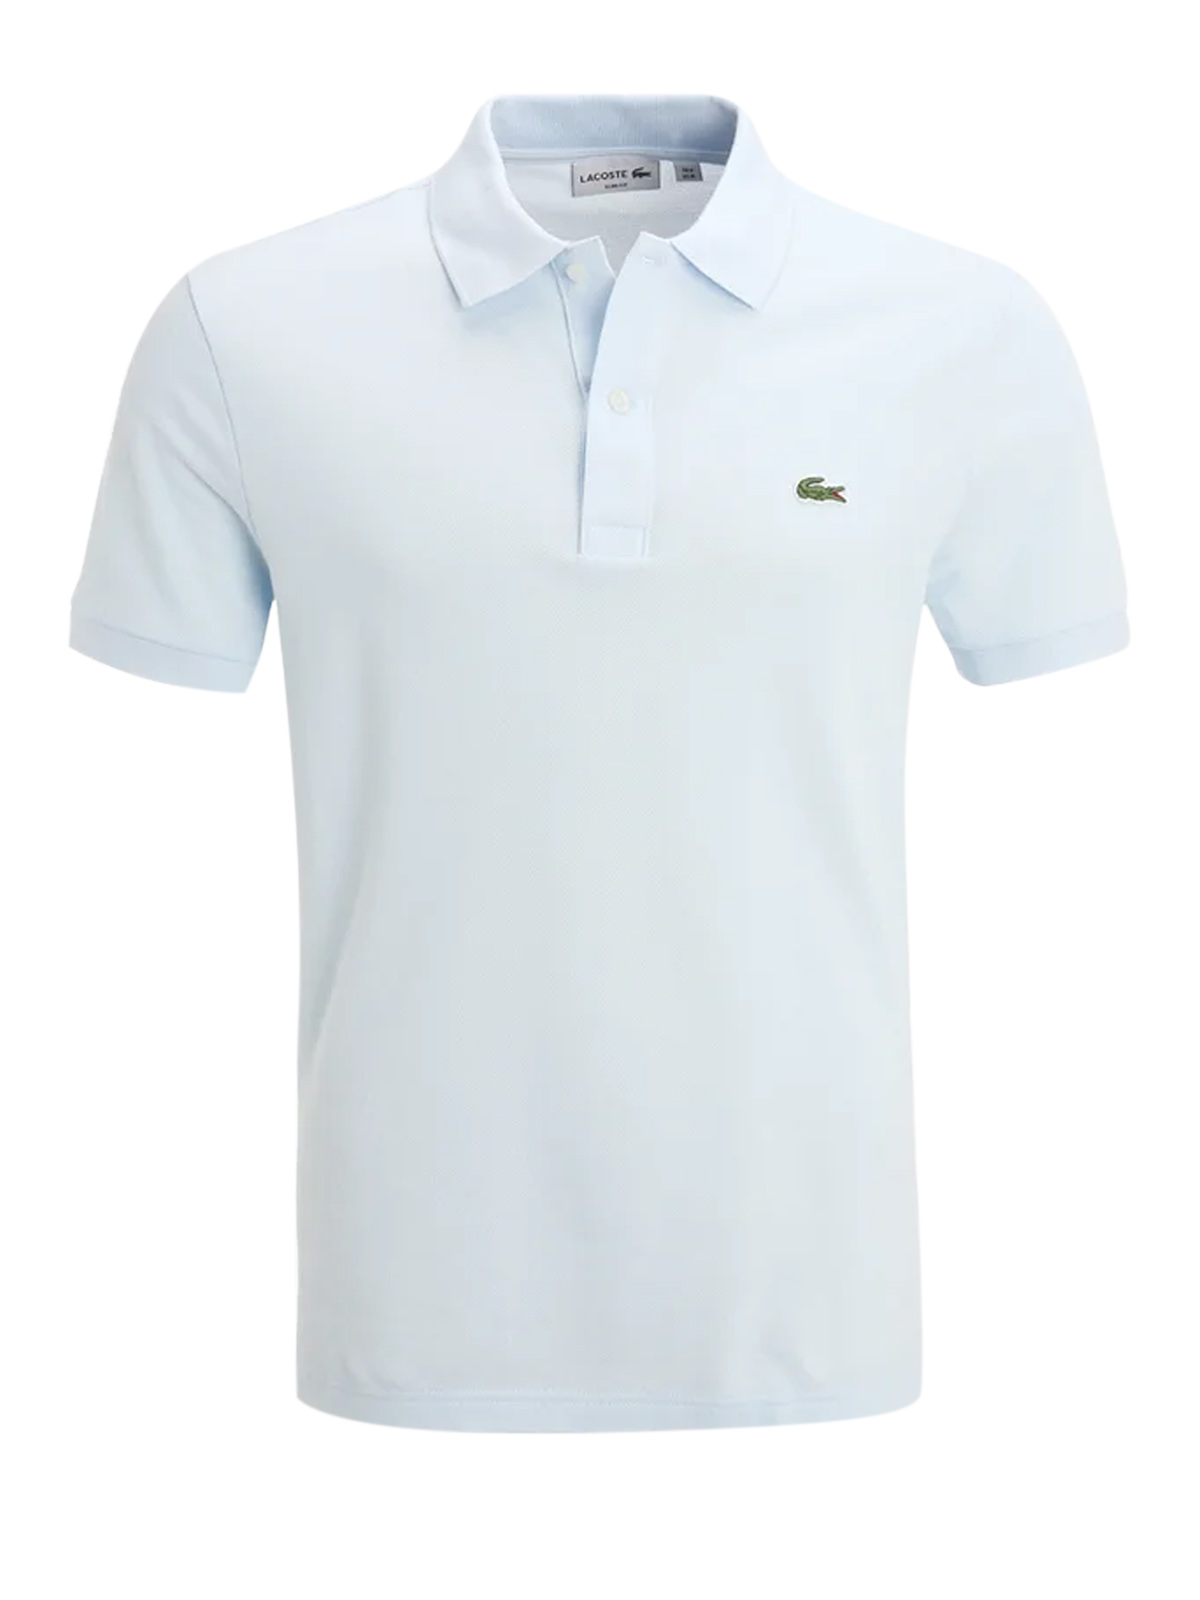 Lacoste Clothing 1212 088